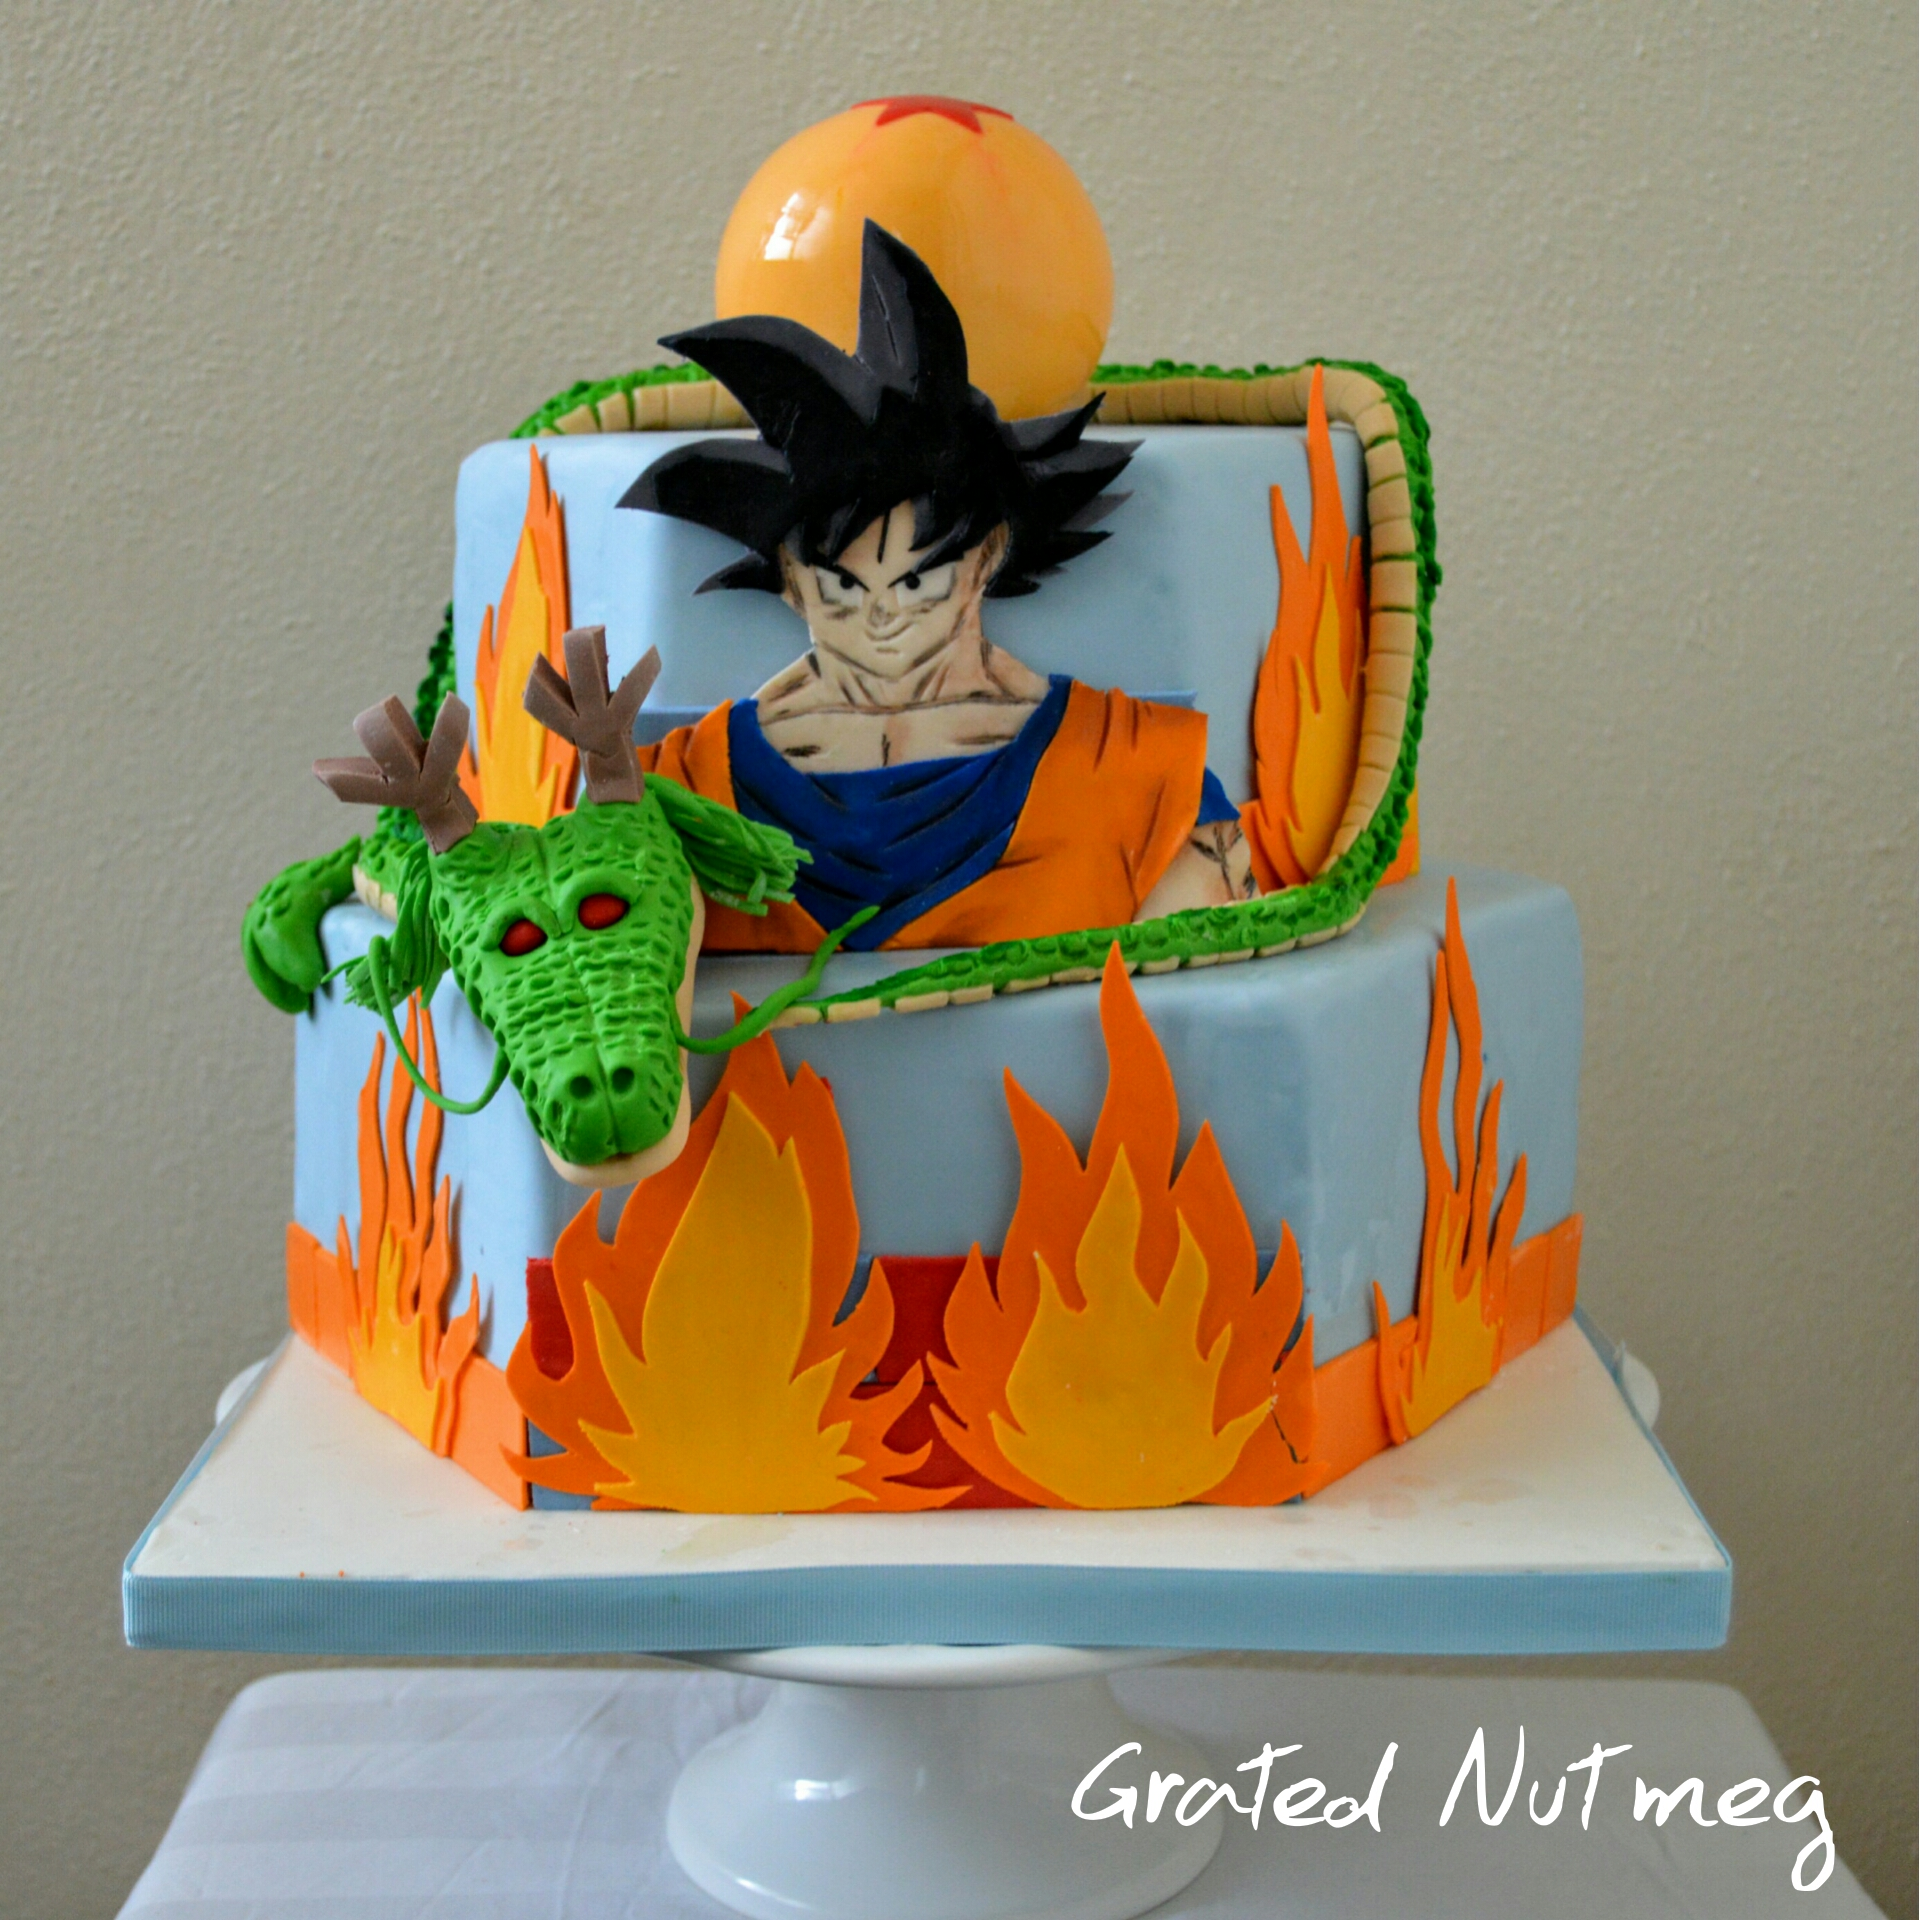 Dragon Ball Z Cake Decorating Kit : Home Designing Tips Images. Apartments Apartment Inspiring ...